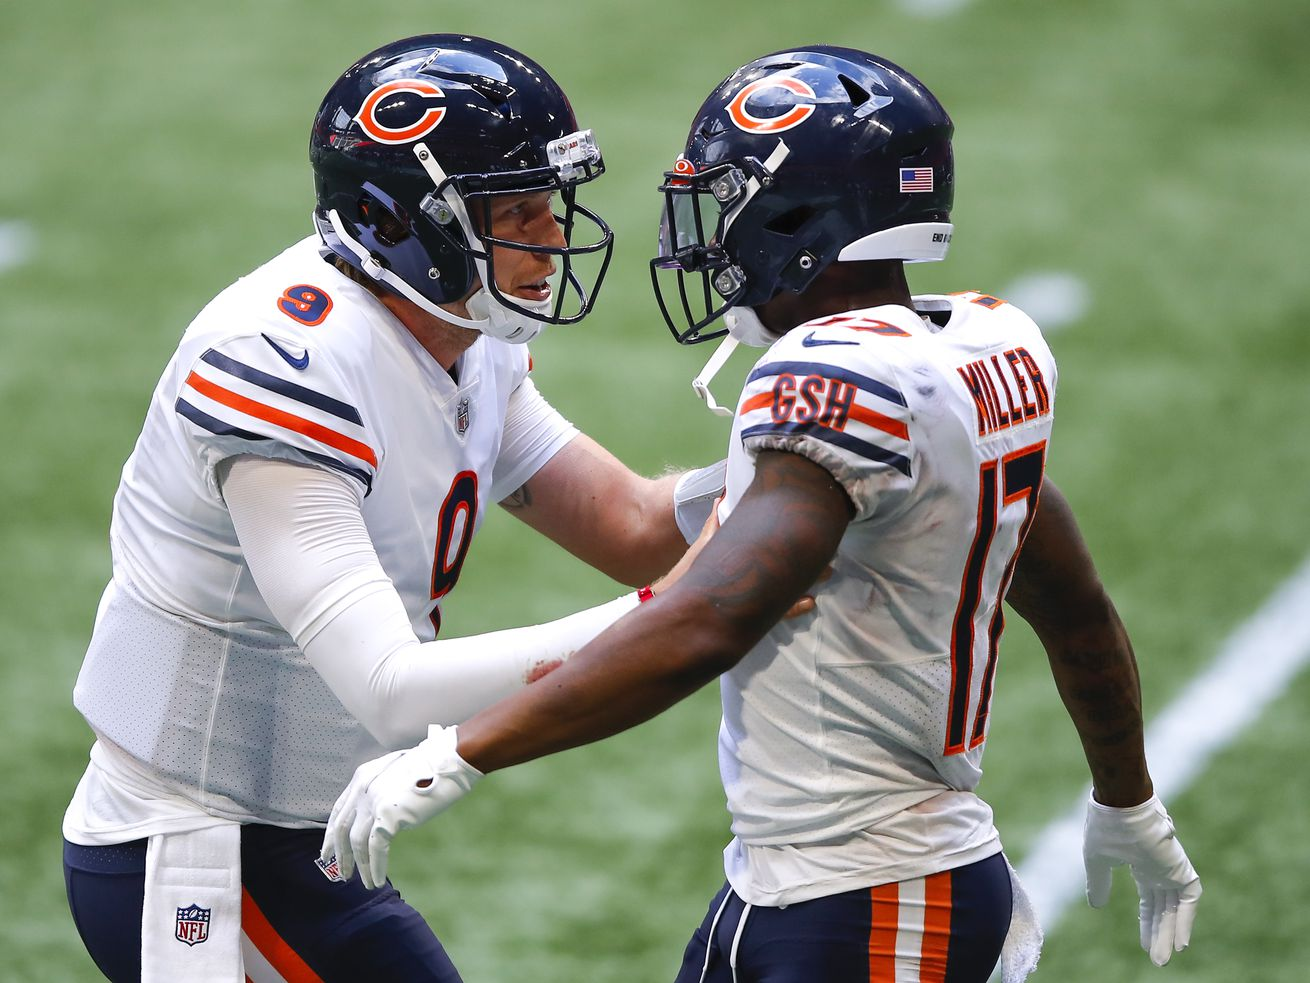 Better late than never: Mitch Trubisky gets benched, watches Nick Foles lead Bears to victory